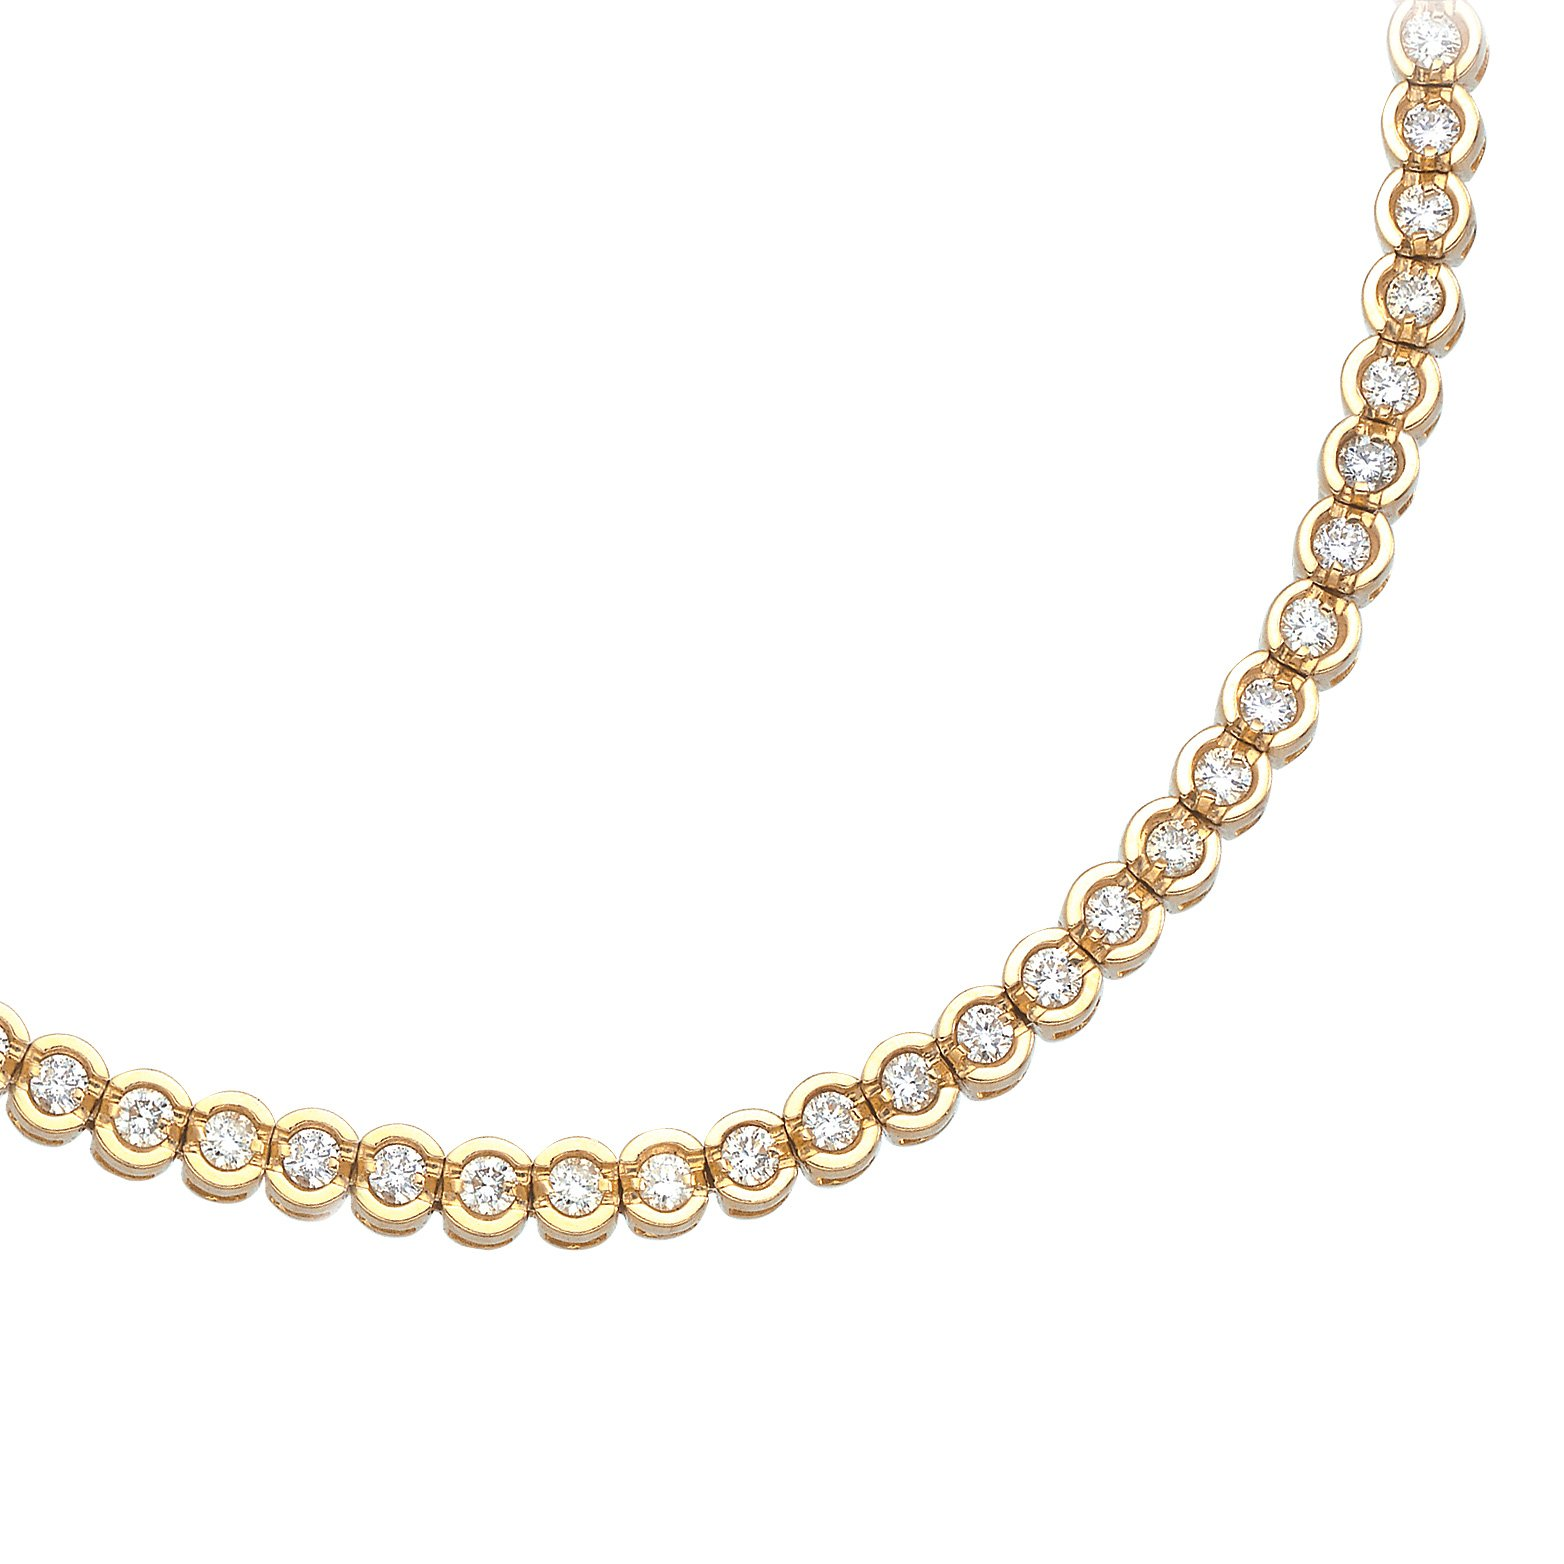 14K Yellow Gold Round Diamond Circular Style Tennis Bracelet (7 Inch Length) by Direct-Jewelry